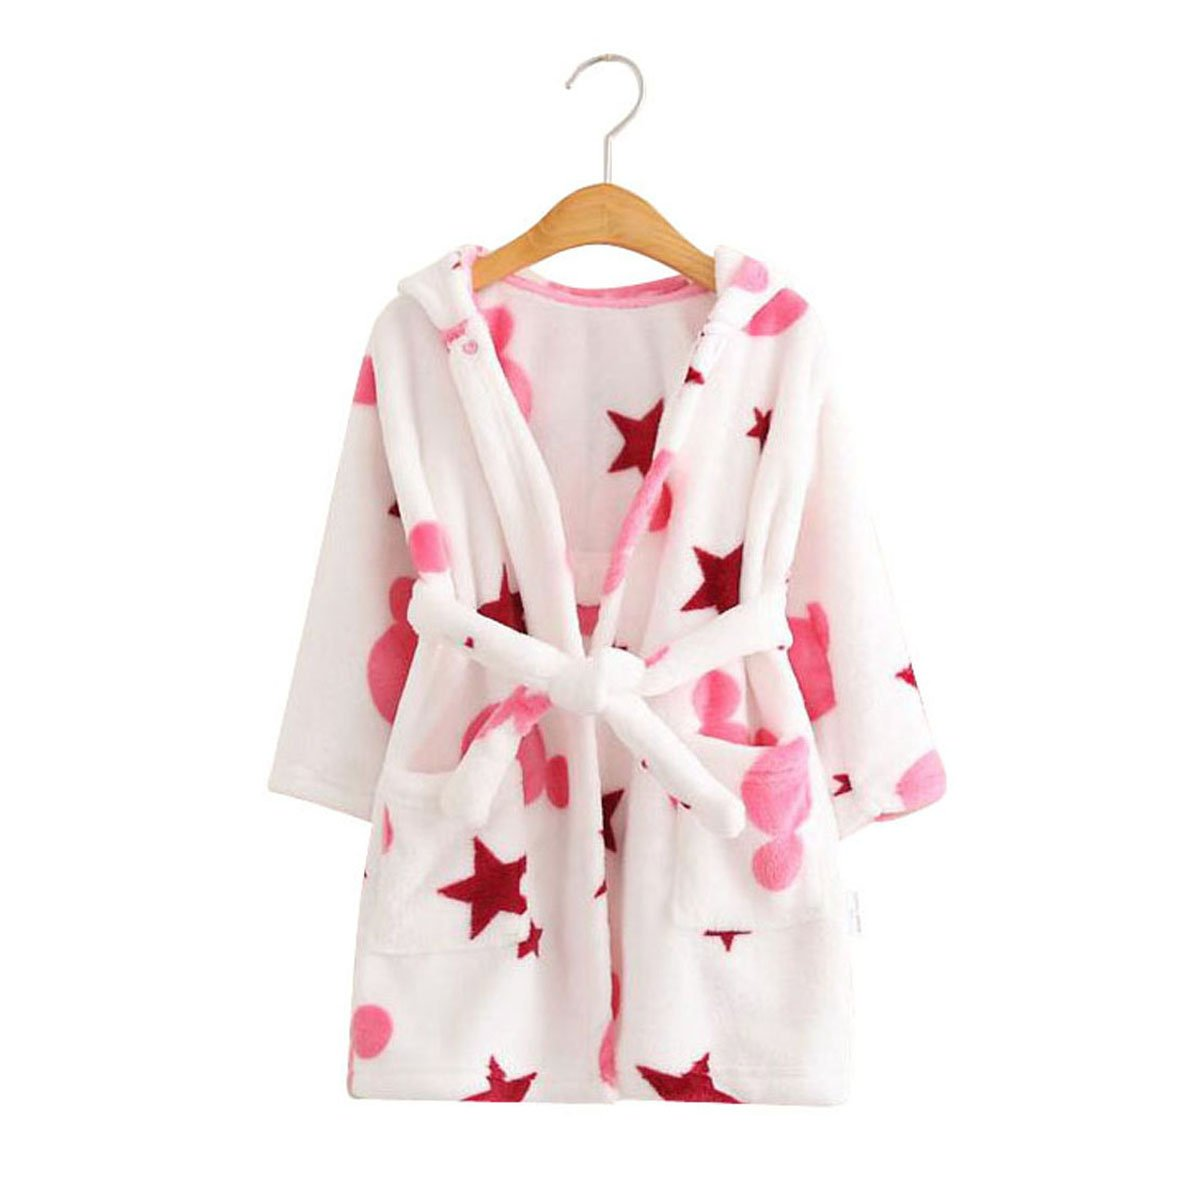 Kids Coral Fleece Bathrobe Robe Boys And Girls Hooded Robe Shawl Toddler Pajamas (18 Month - 24 Month, Stars)